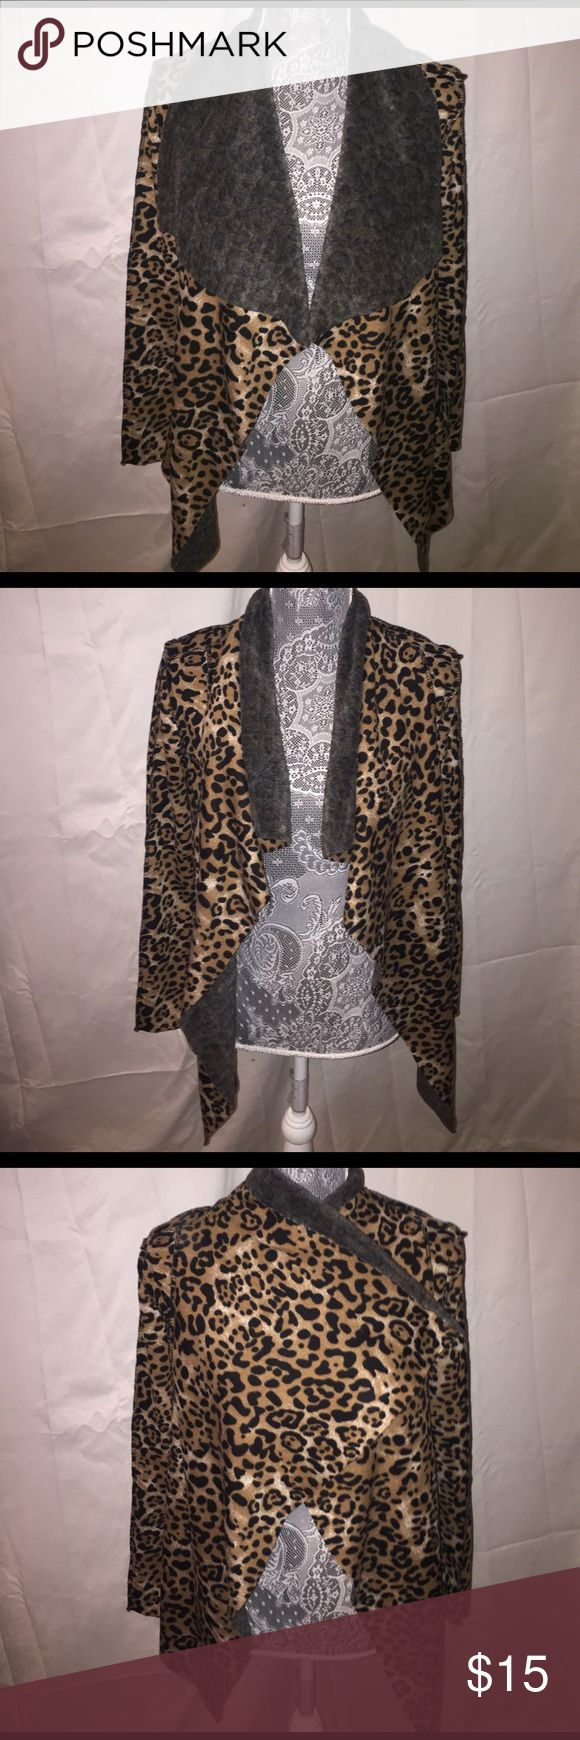 Leopard sweater Velour leopard sweater. No buttons or zippers.super soft and cozy Sweaters